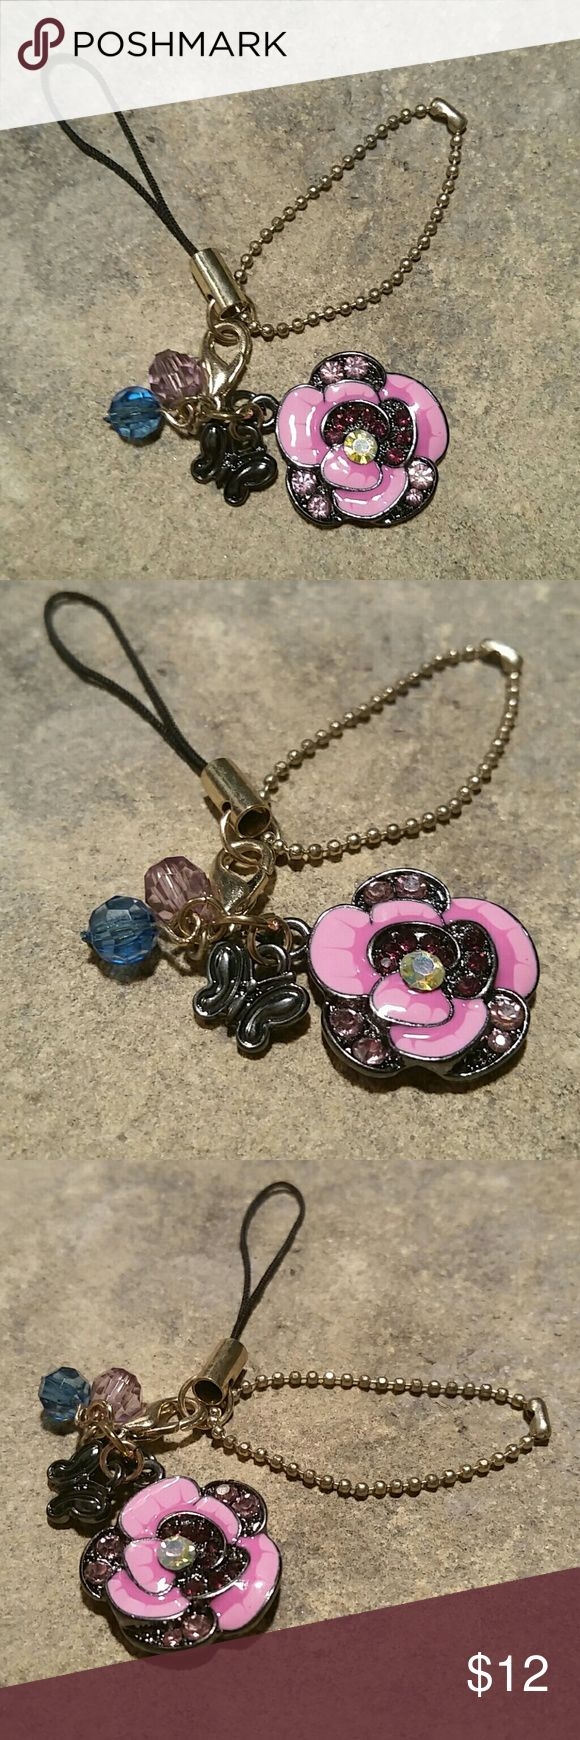 """ANNA SUI Enameled Flower Purse Charm / Keychain New, never used, retired vintage design, Anna Sui enameled flower purse charm or key chain. Pink flower accented by light and dark pink & aurora borealis (rainbow sheen) crystal rhinestones, metal butterfly,  pink and blue crystal beads. Anna Sui stamped on back. Feminine, sophisticated & very stunning for sure, as Anna Sui designs are! Flower .75"""", total 3"""".  Matching jewelry pieces available in my closet!  Thank you for visiting my closet…"""